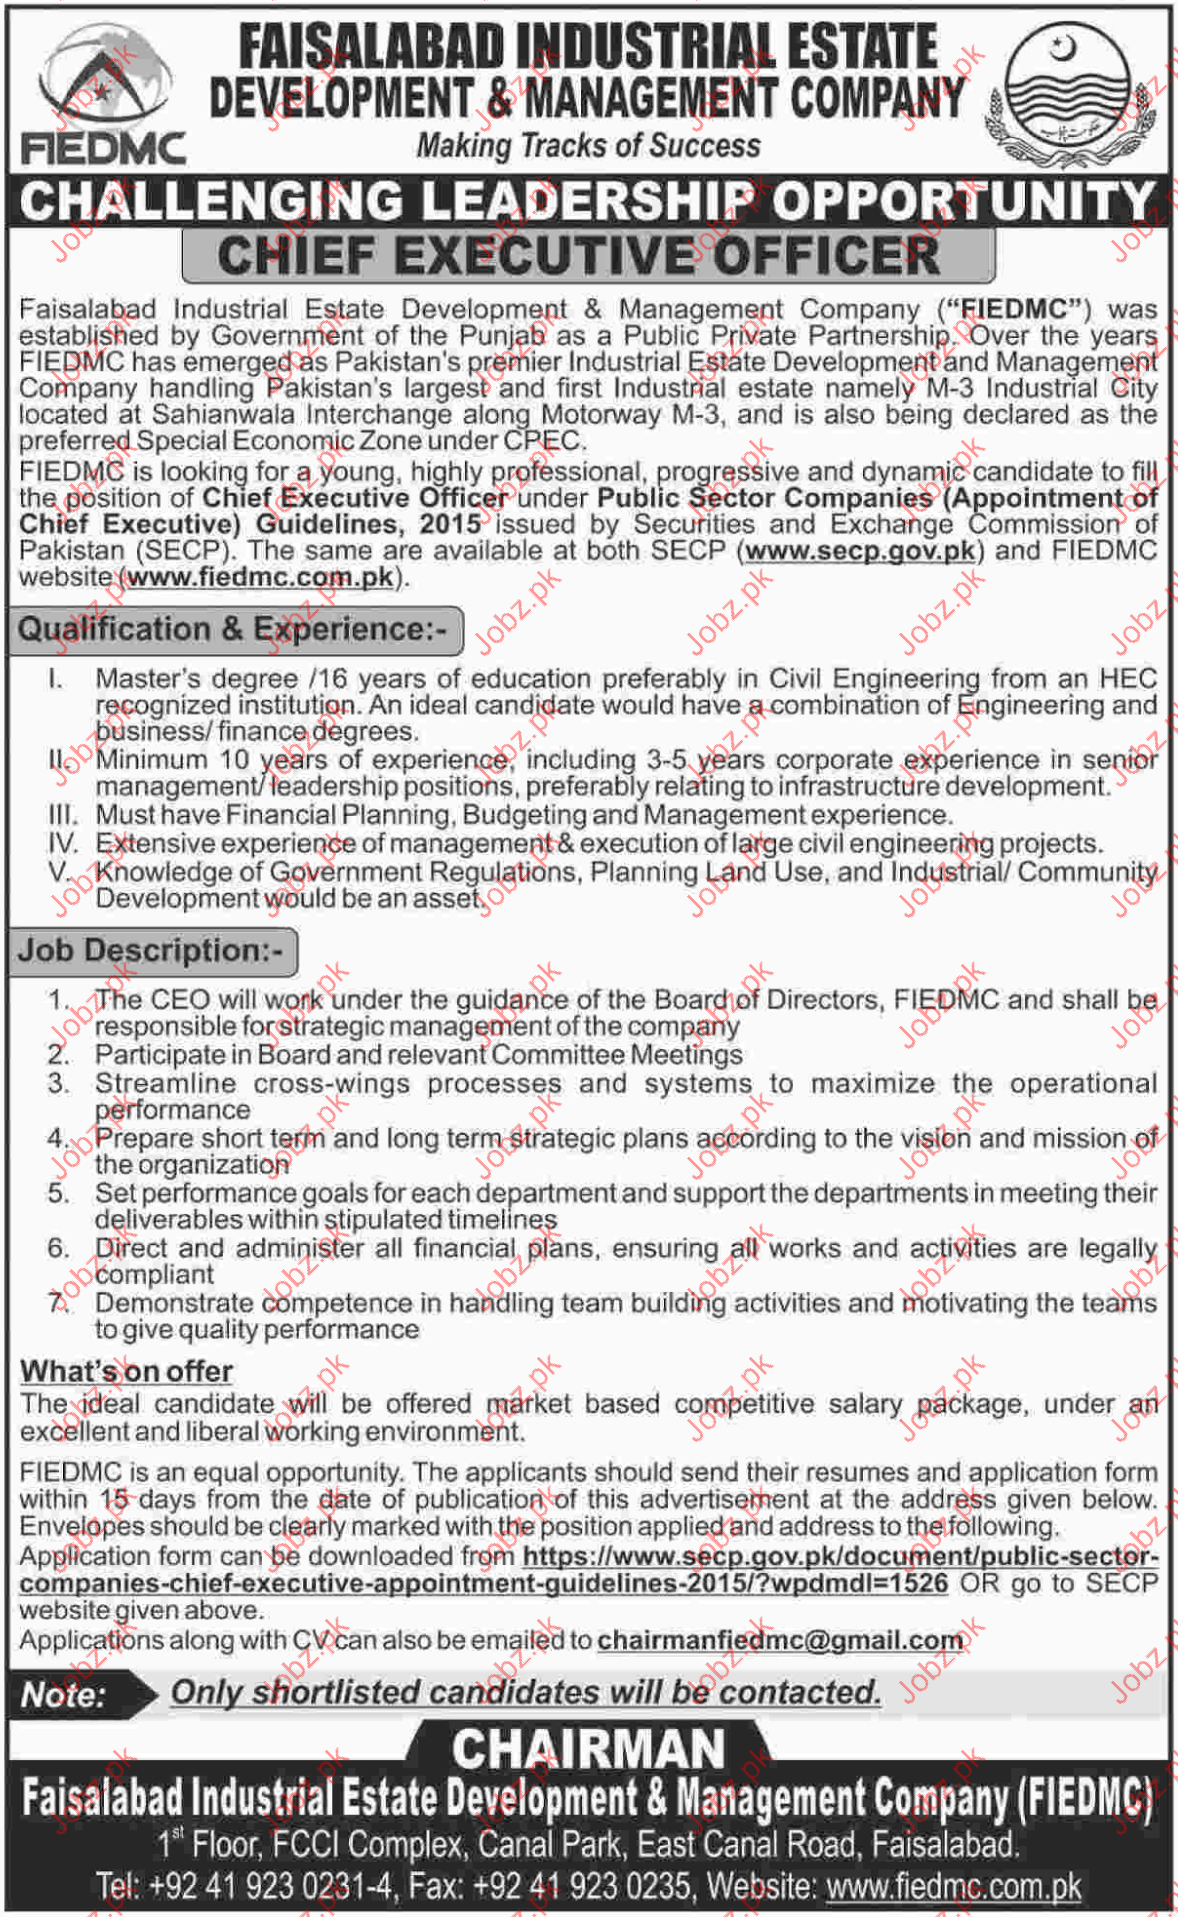 Faisalabad Industrial Estate FIEMDC Jobs Opportunity